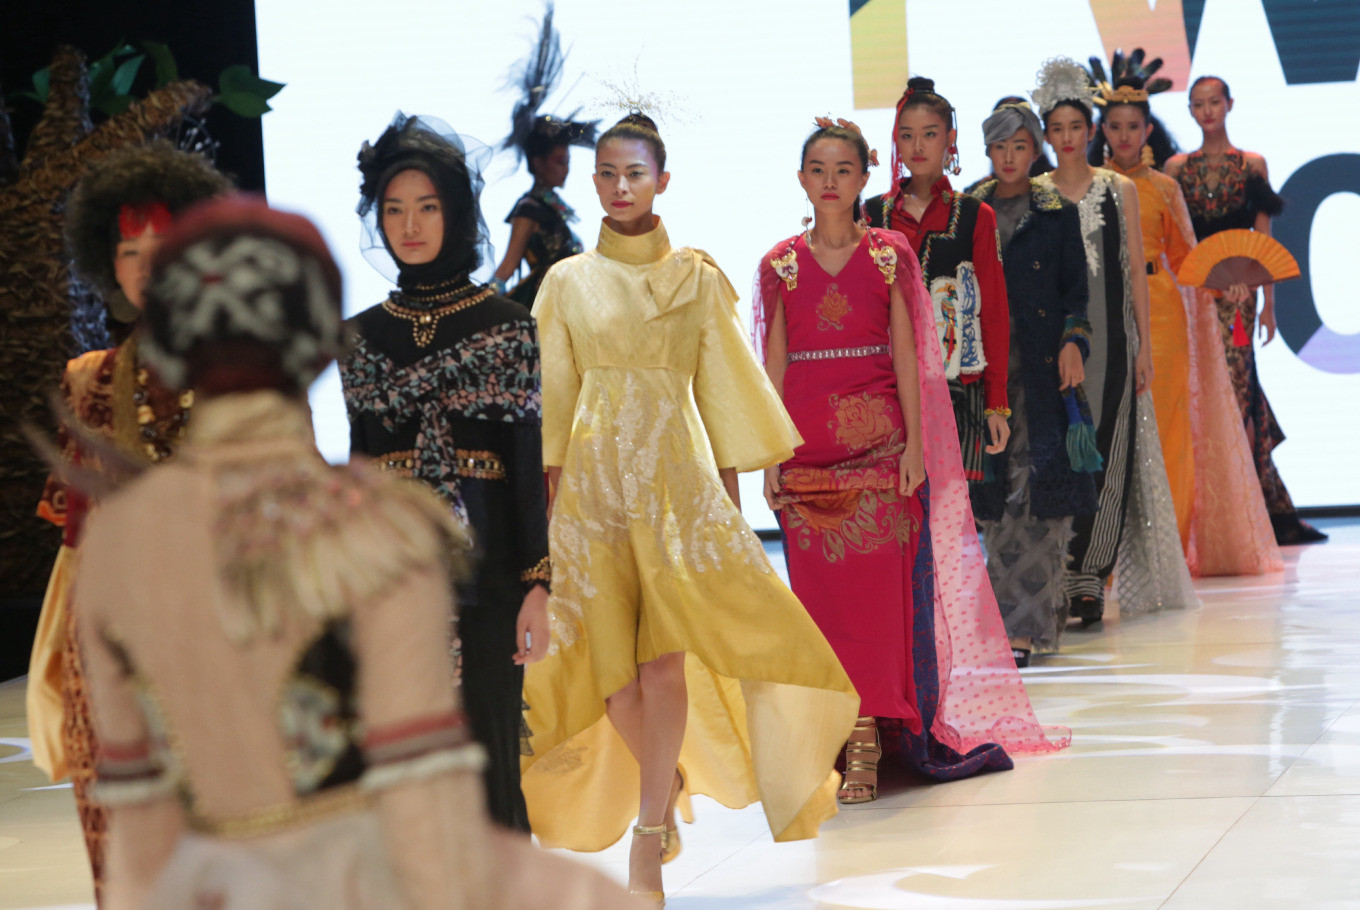 Wearing the designs of 10 emerging Indonesian designers, models strut down the catwalk during the opening ceremony of Indonesia Fashion Week 2019 on Wednesday at the Jakarta Convention Center in Central Jakarta.